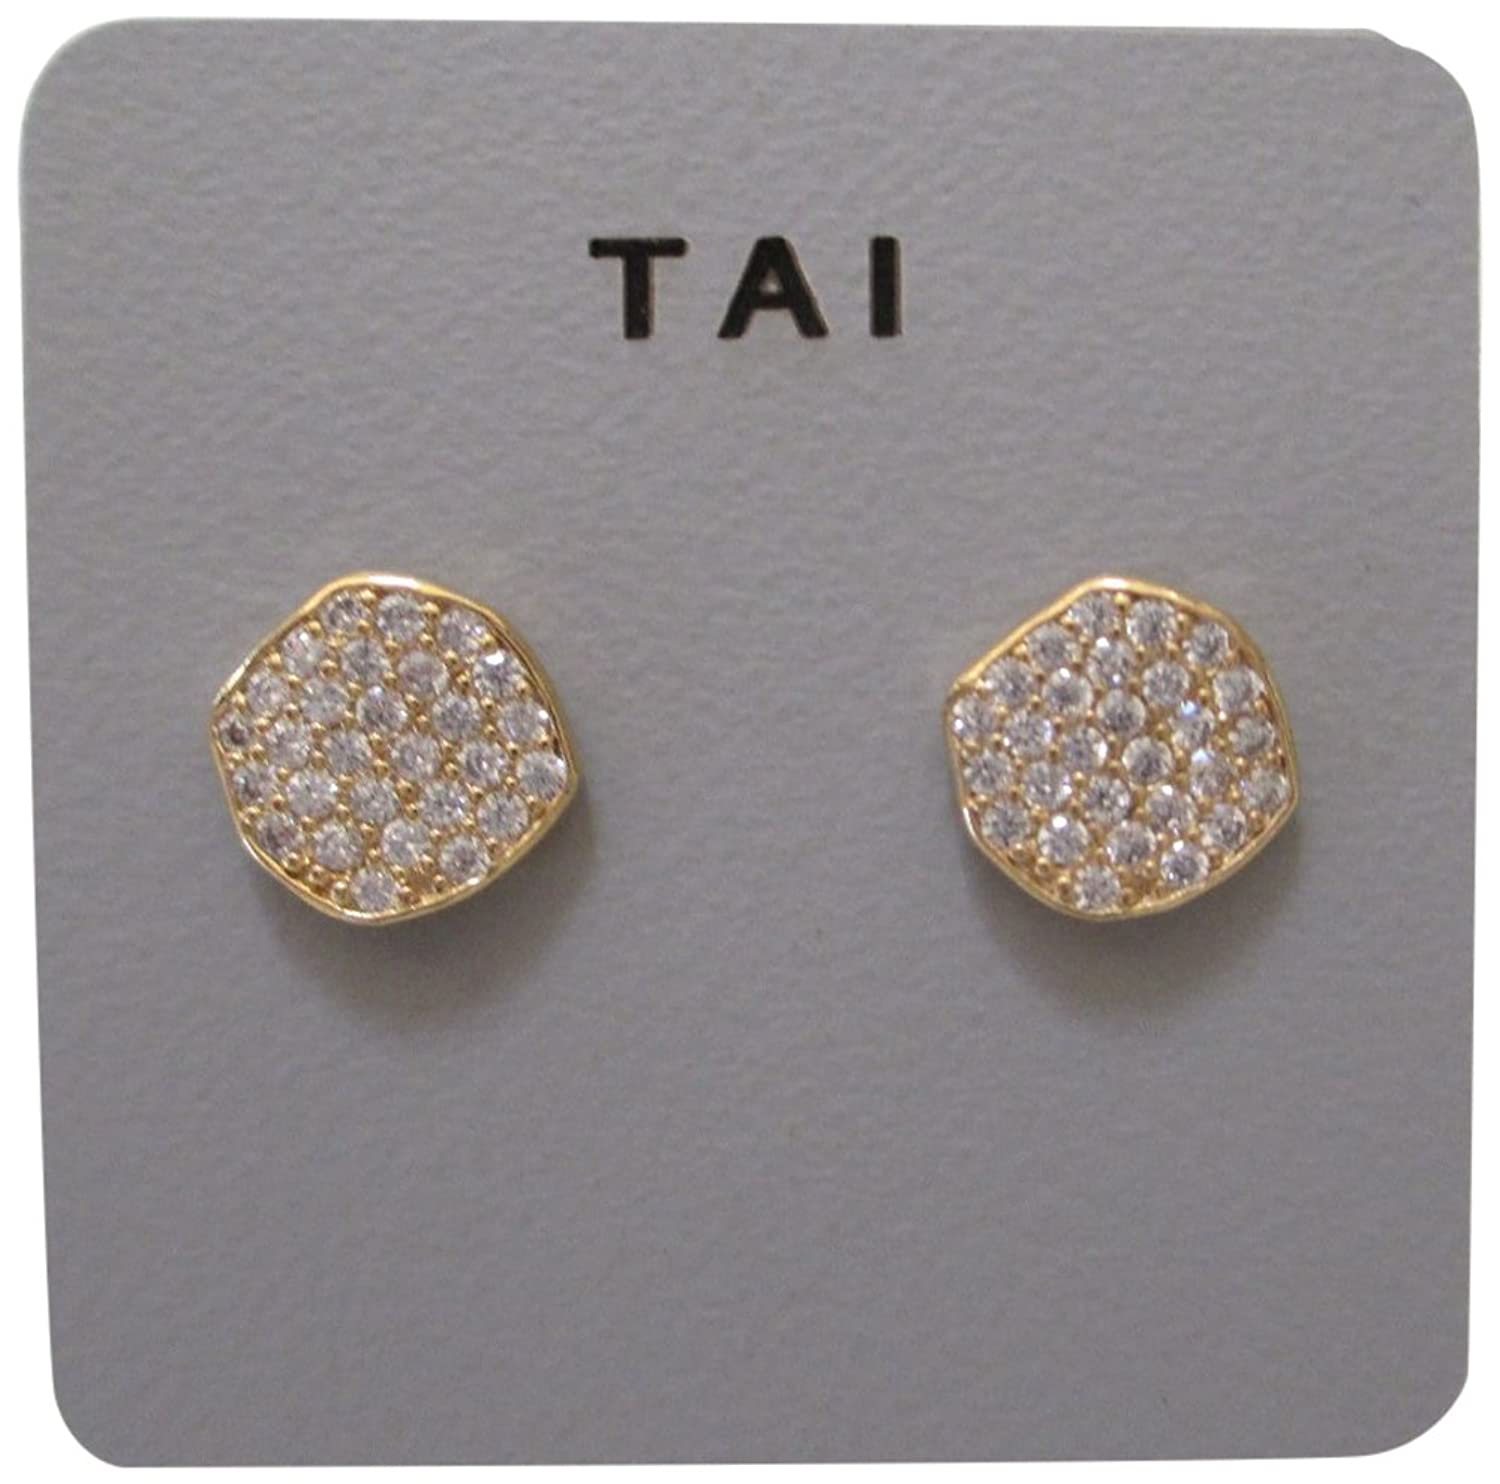 Tai Wavy Disc Crystal Pierced Stud Earrings (gold-plated-base)